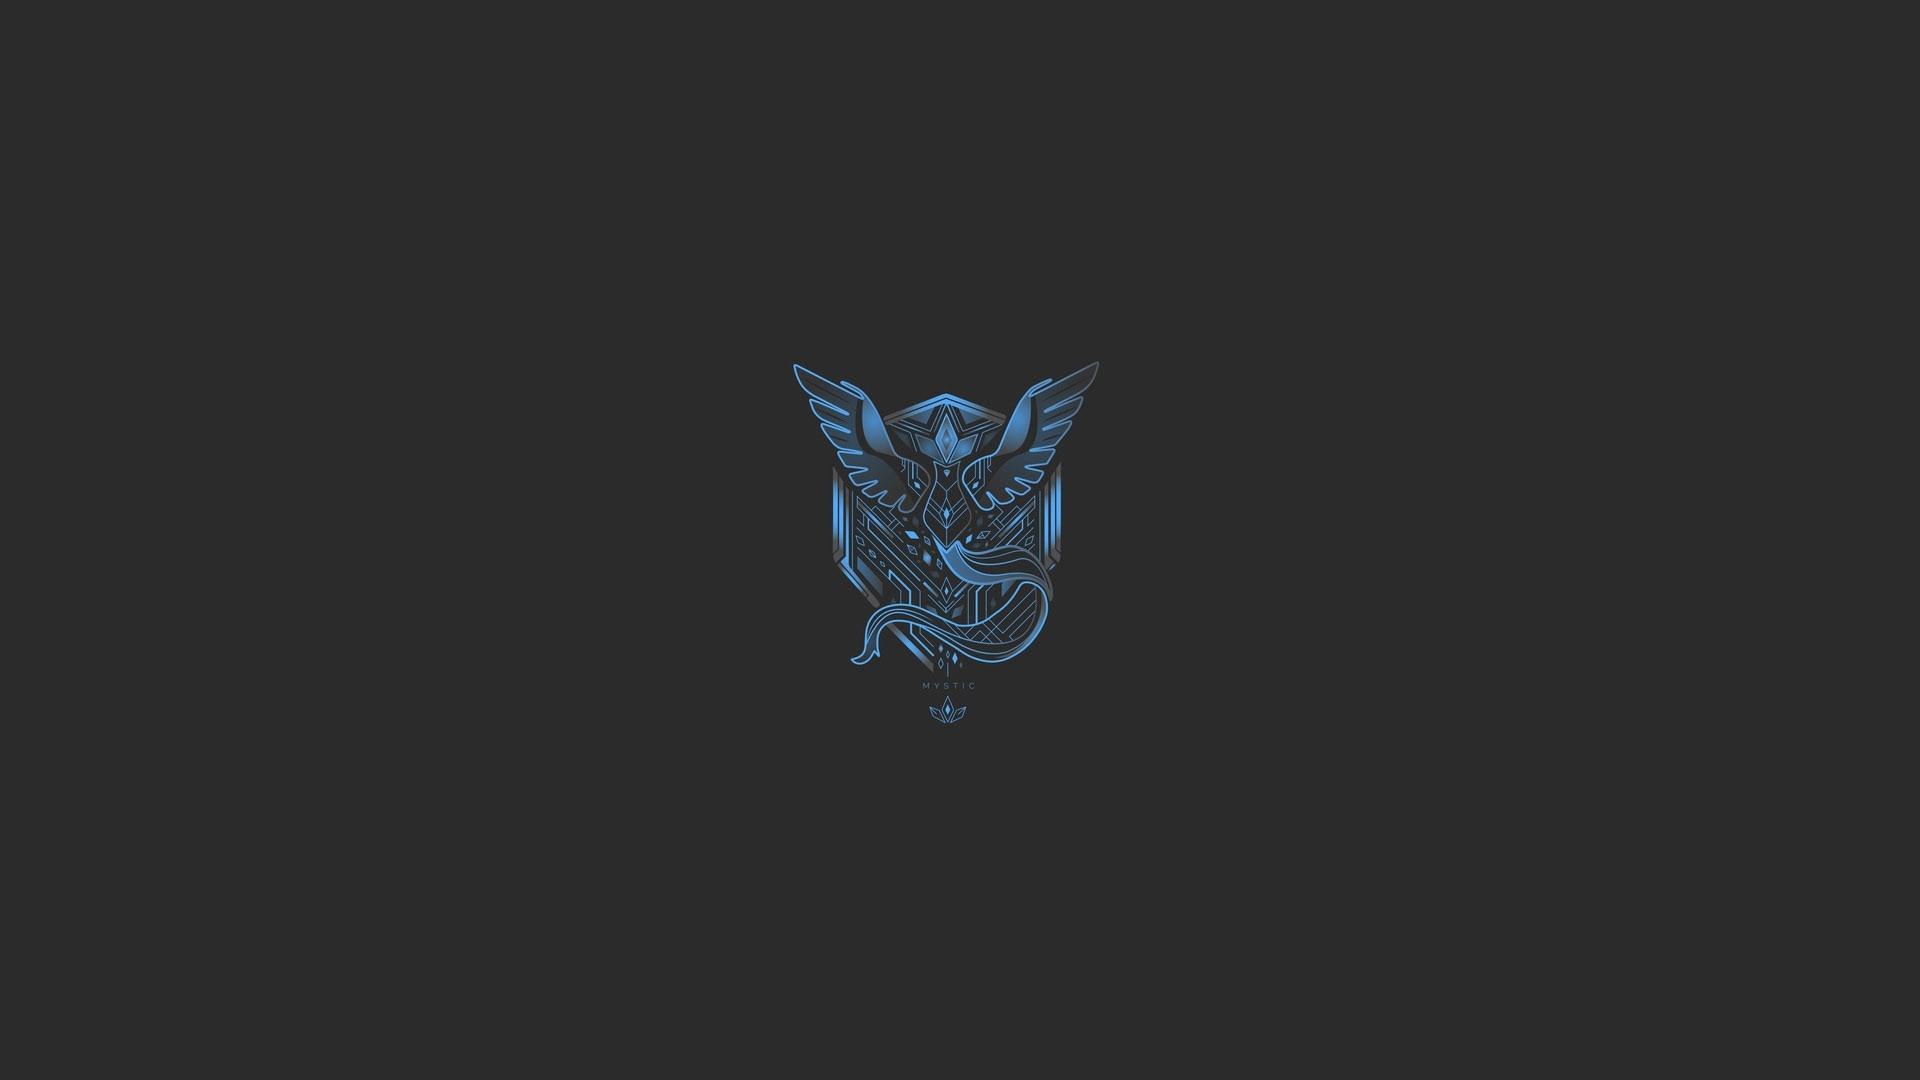 Wallpaper Pokemon Go Team Mystic Logo Wallpapermaiden